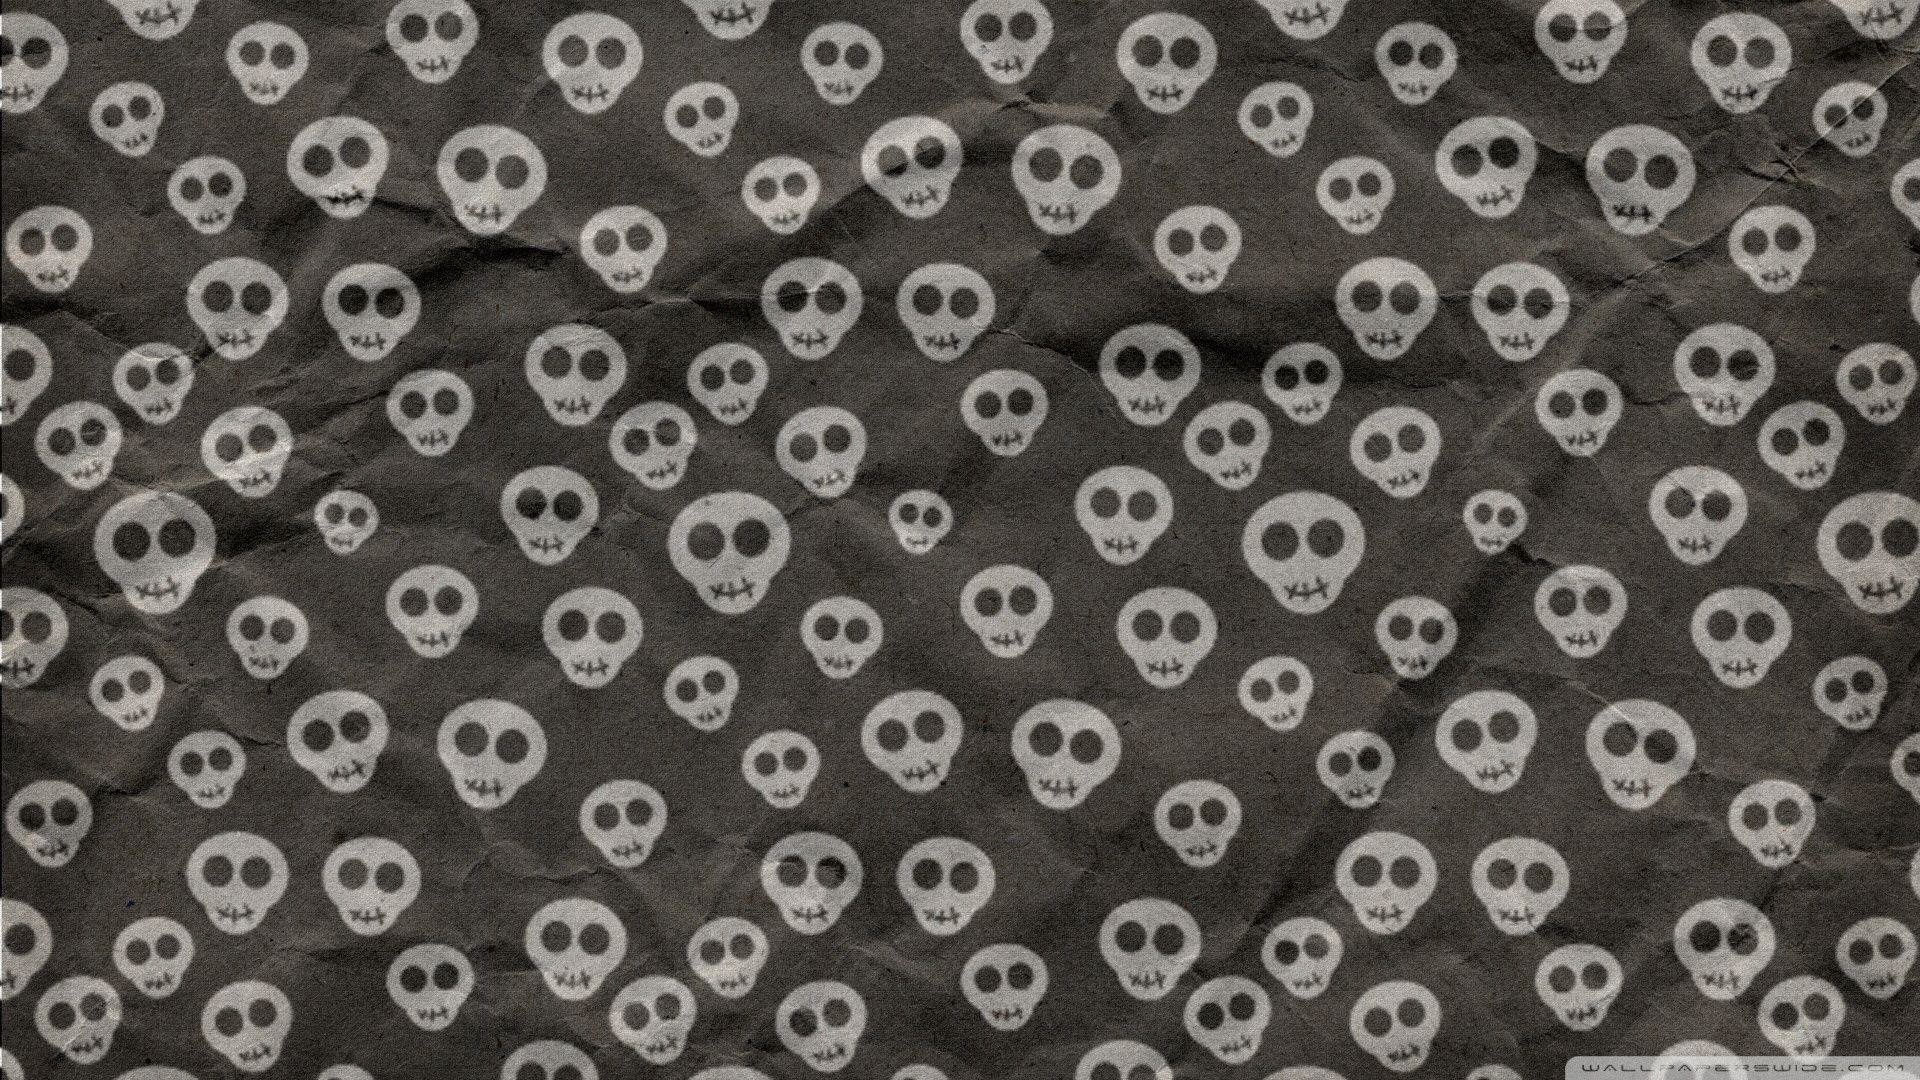 1920x1080 Images For > Cute Skulls Tumblr Background